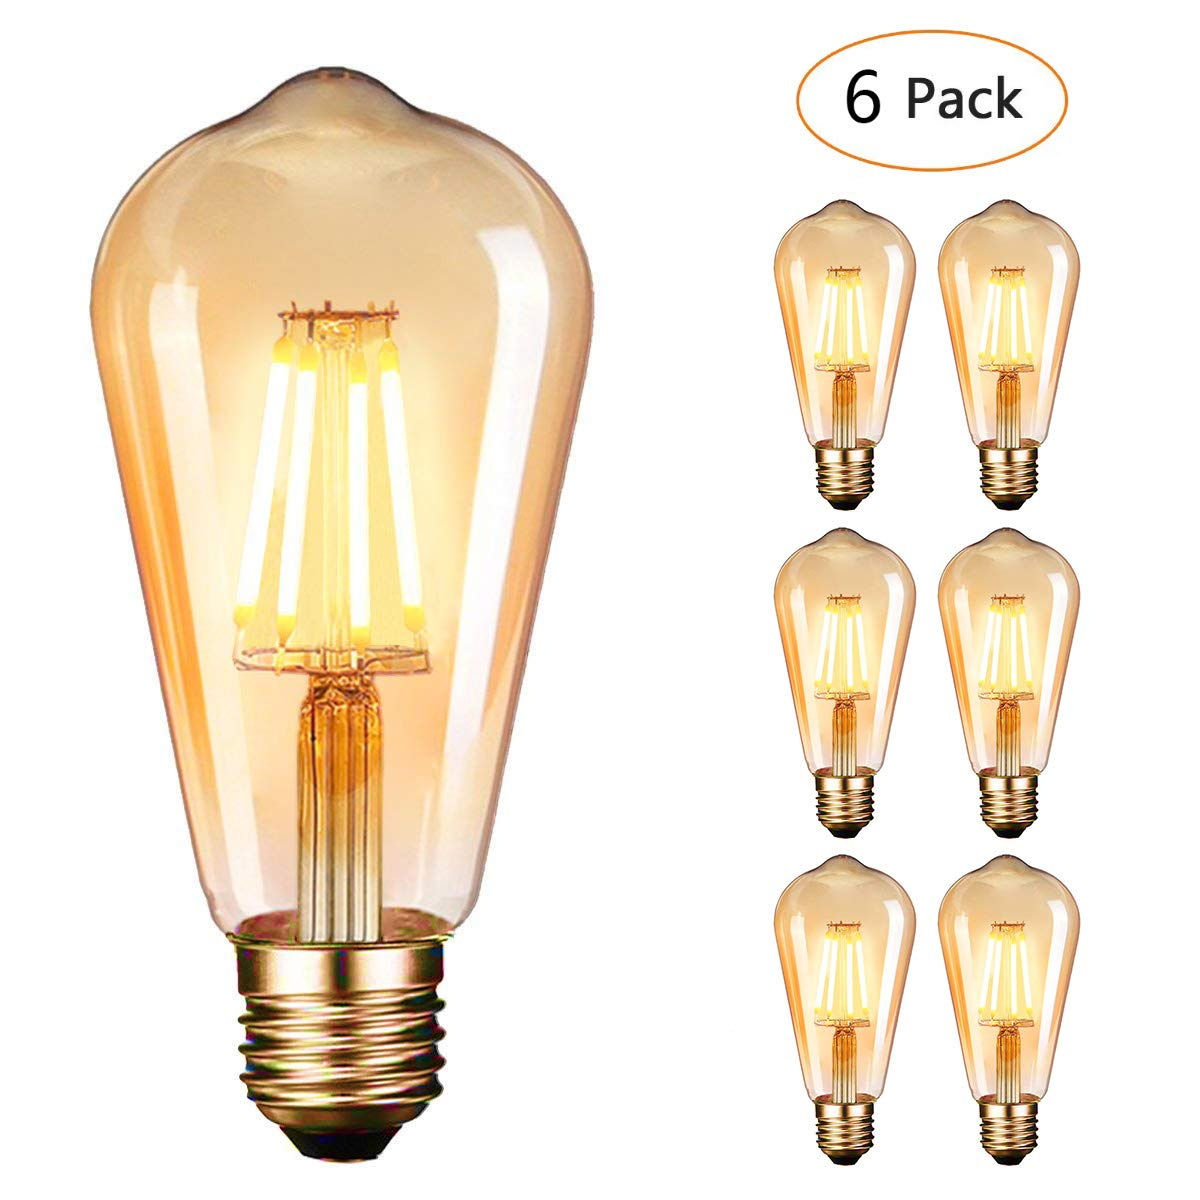 Vintage Light Bulbs,Dobee Edison Light Bulbs 4W (40W Equivalent) Led Filament Bulb, Amber Glow, ST64 E27 2600-2700K 360° Wide Angle Light Retro Antique Style Light 6 Pack [Energy Class A+++]